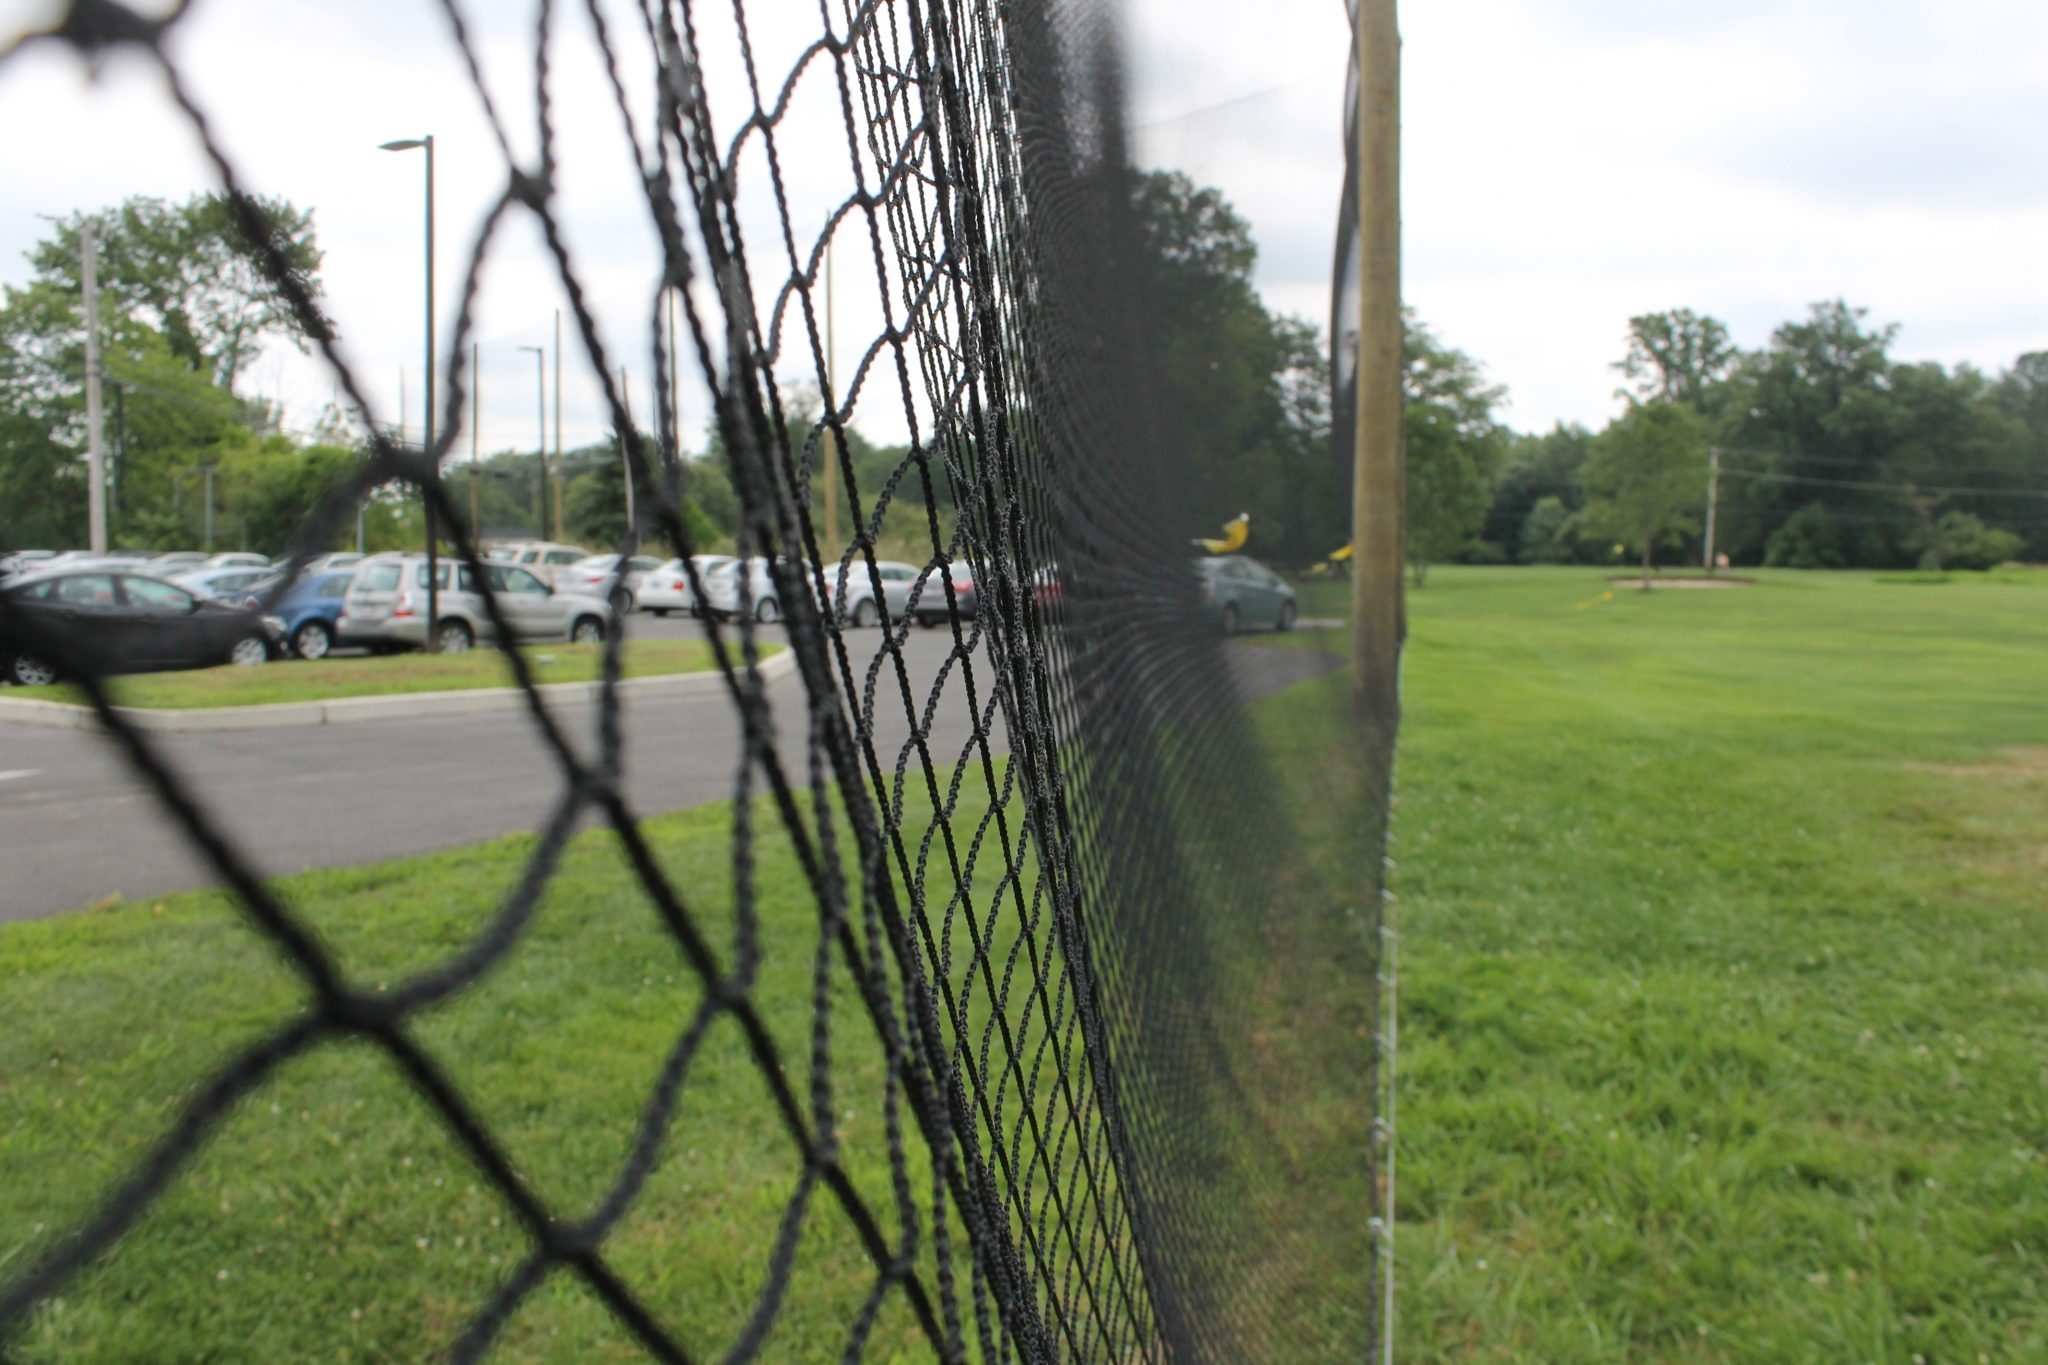 How Crappy Golfers Forced Bucks County To Spend $31,000